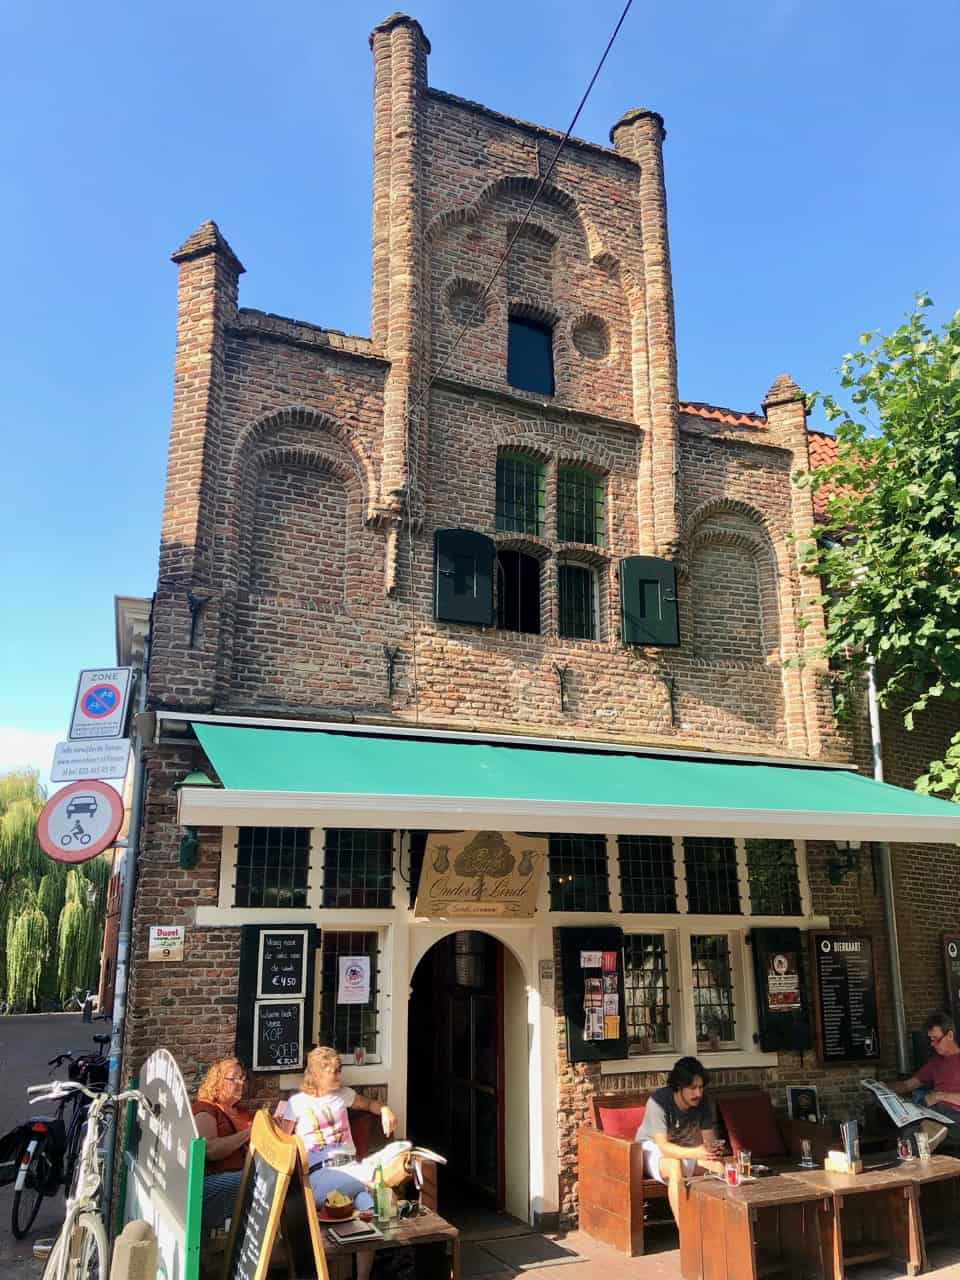 cafe-onder-de-linden-amersfoort-photo